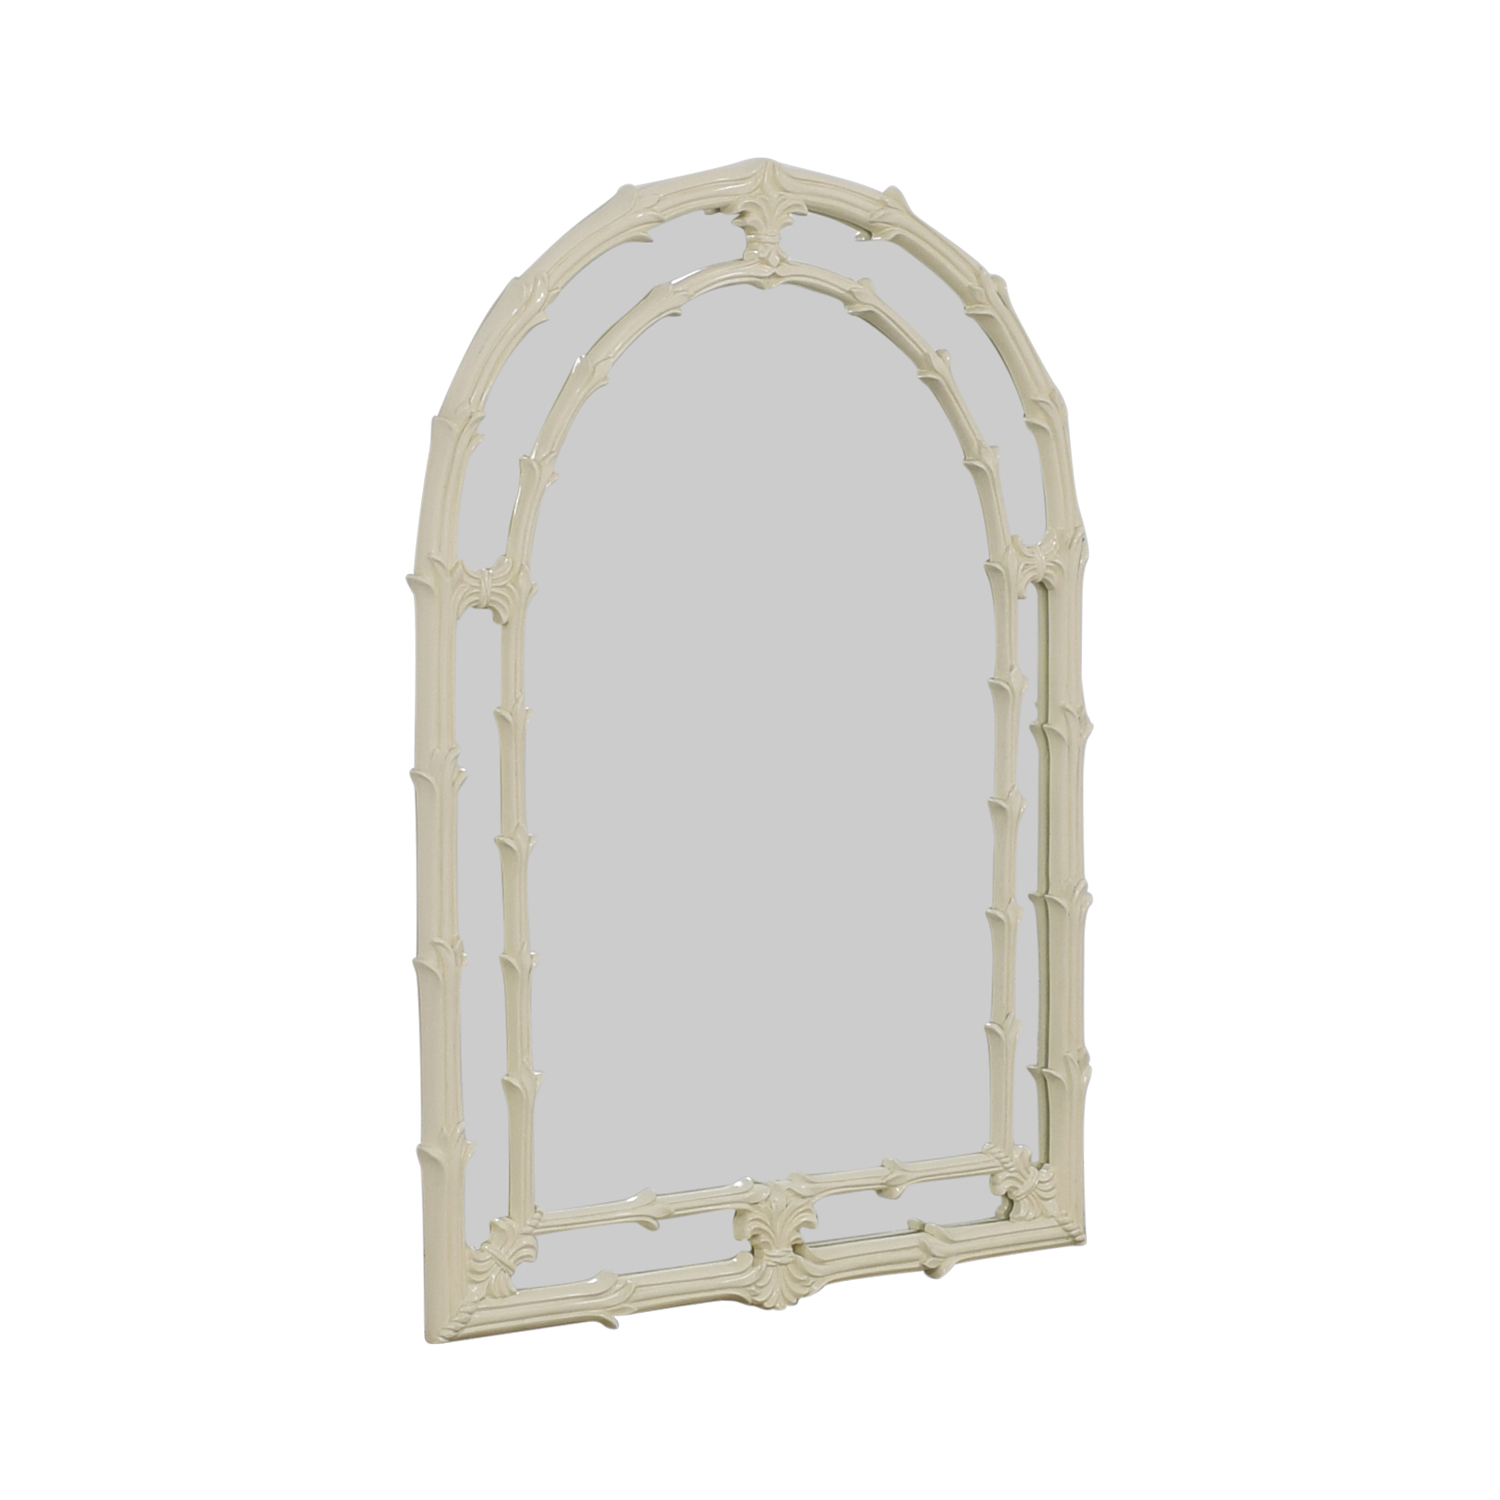 buy Asian Fleur de Lis White Lacquered Wood Arched Mirror  Decor